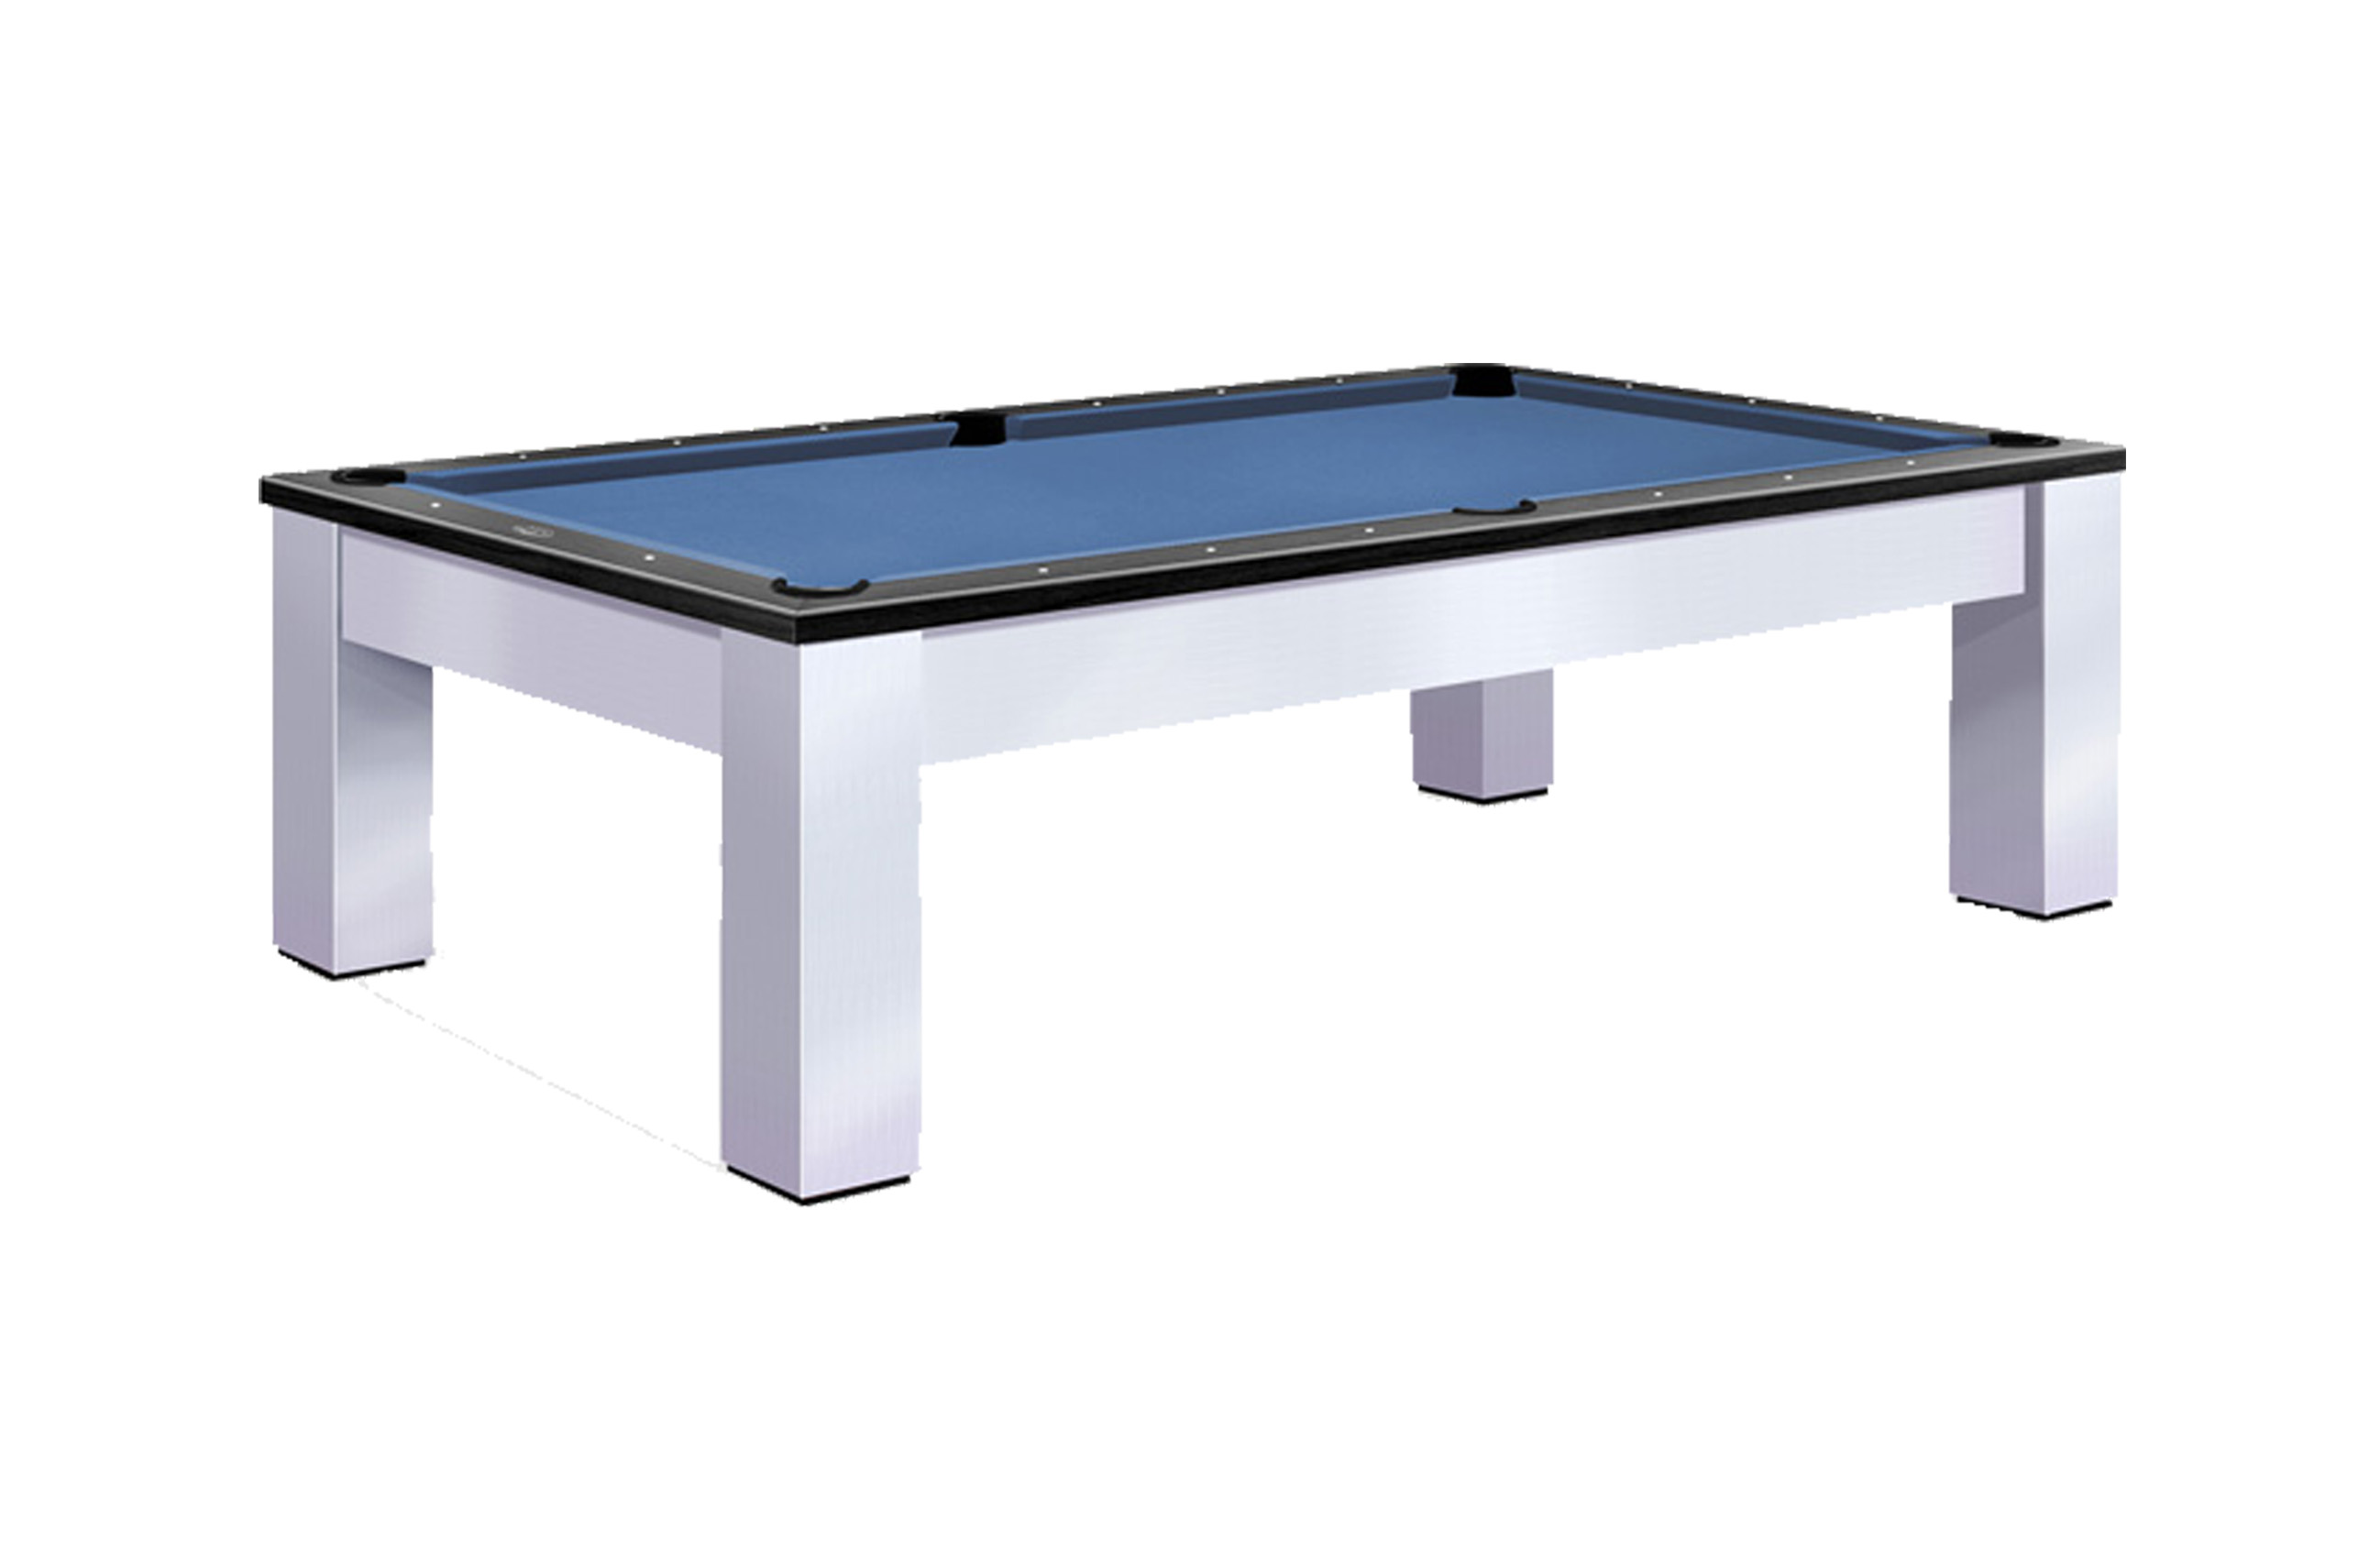 series modern to supplies billiards built proudly reno order billiard pool table olhausen ultra laminate patio tables premium